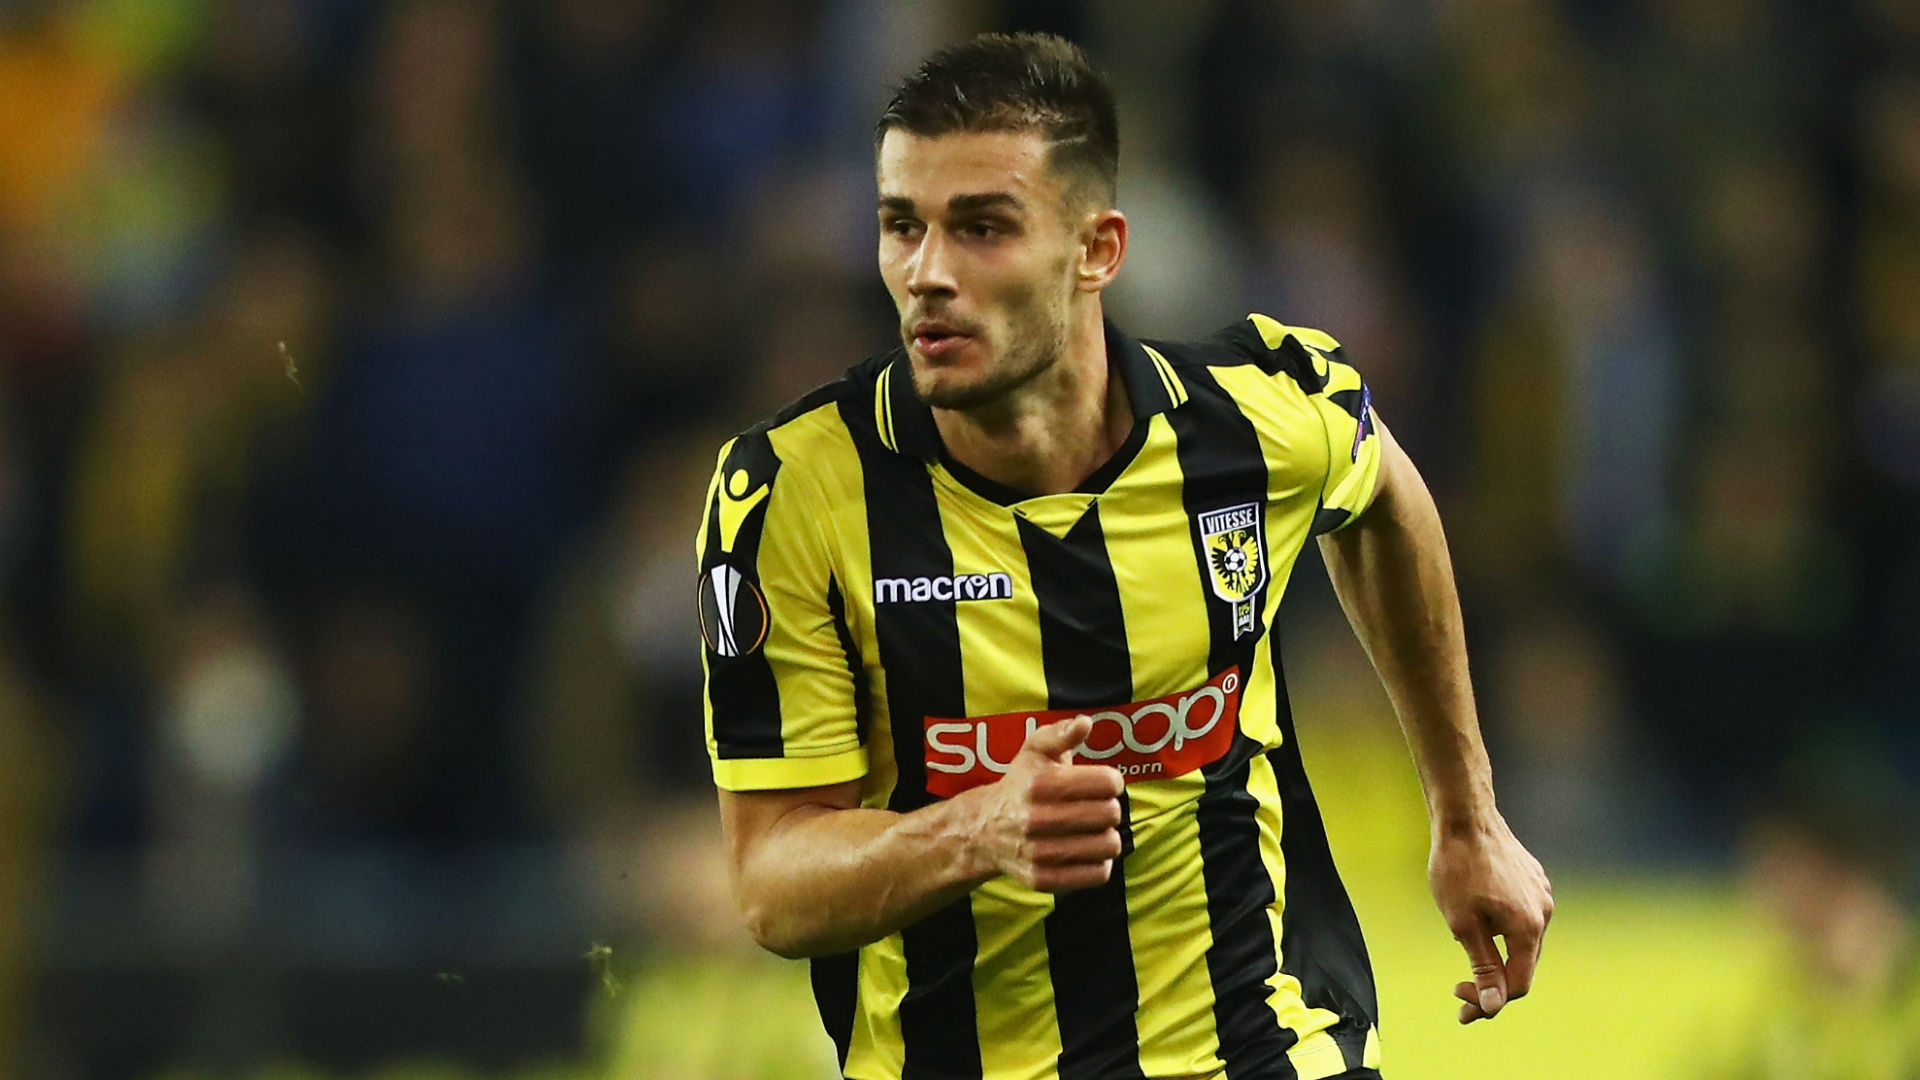 Chelsea's Miazga fined by loan club Vitesse for 'inappropriate' grab